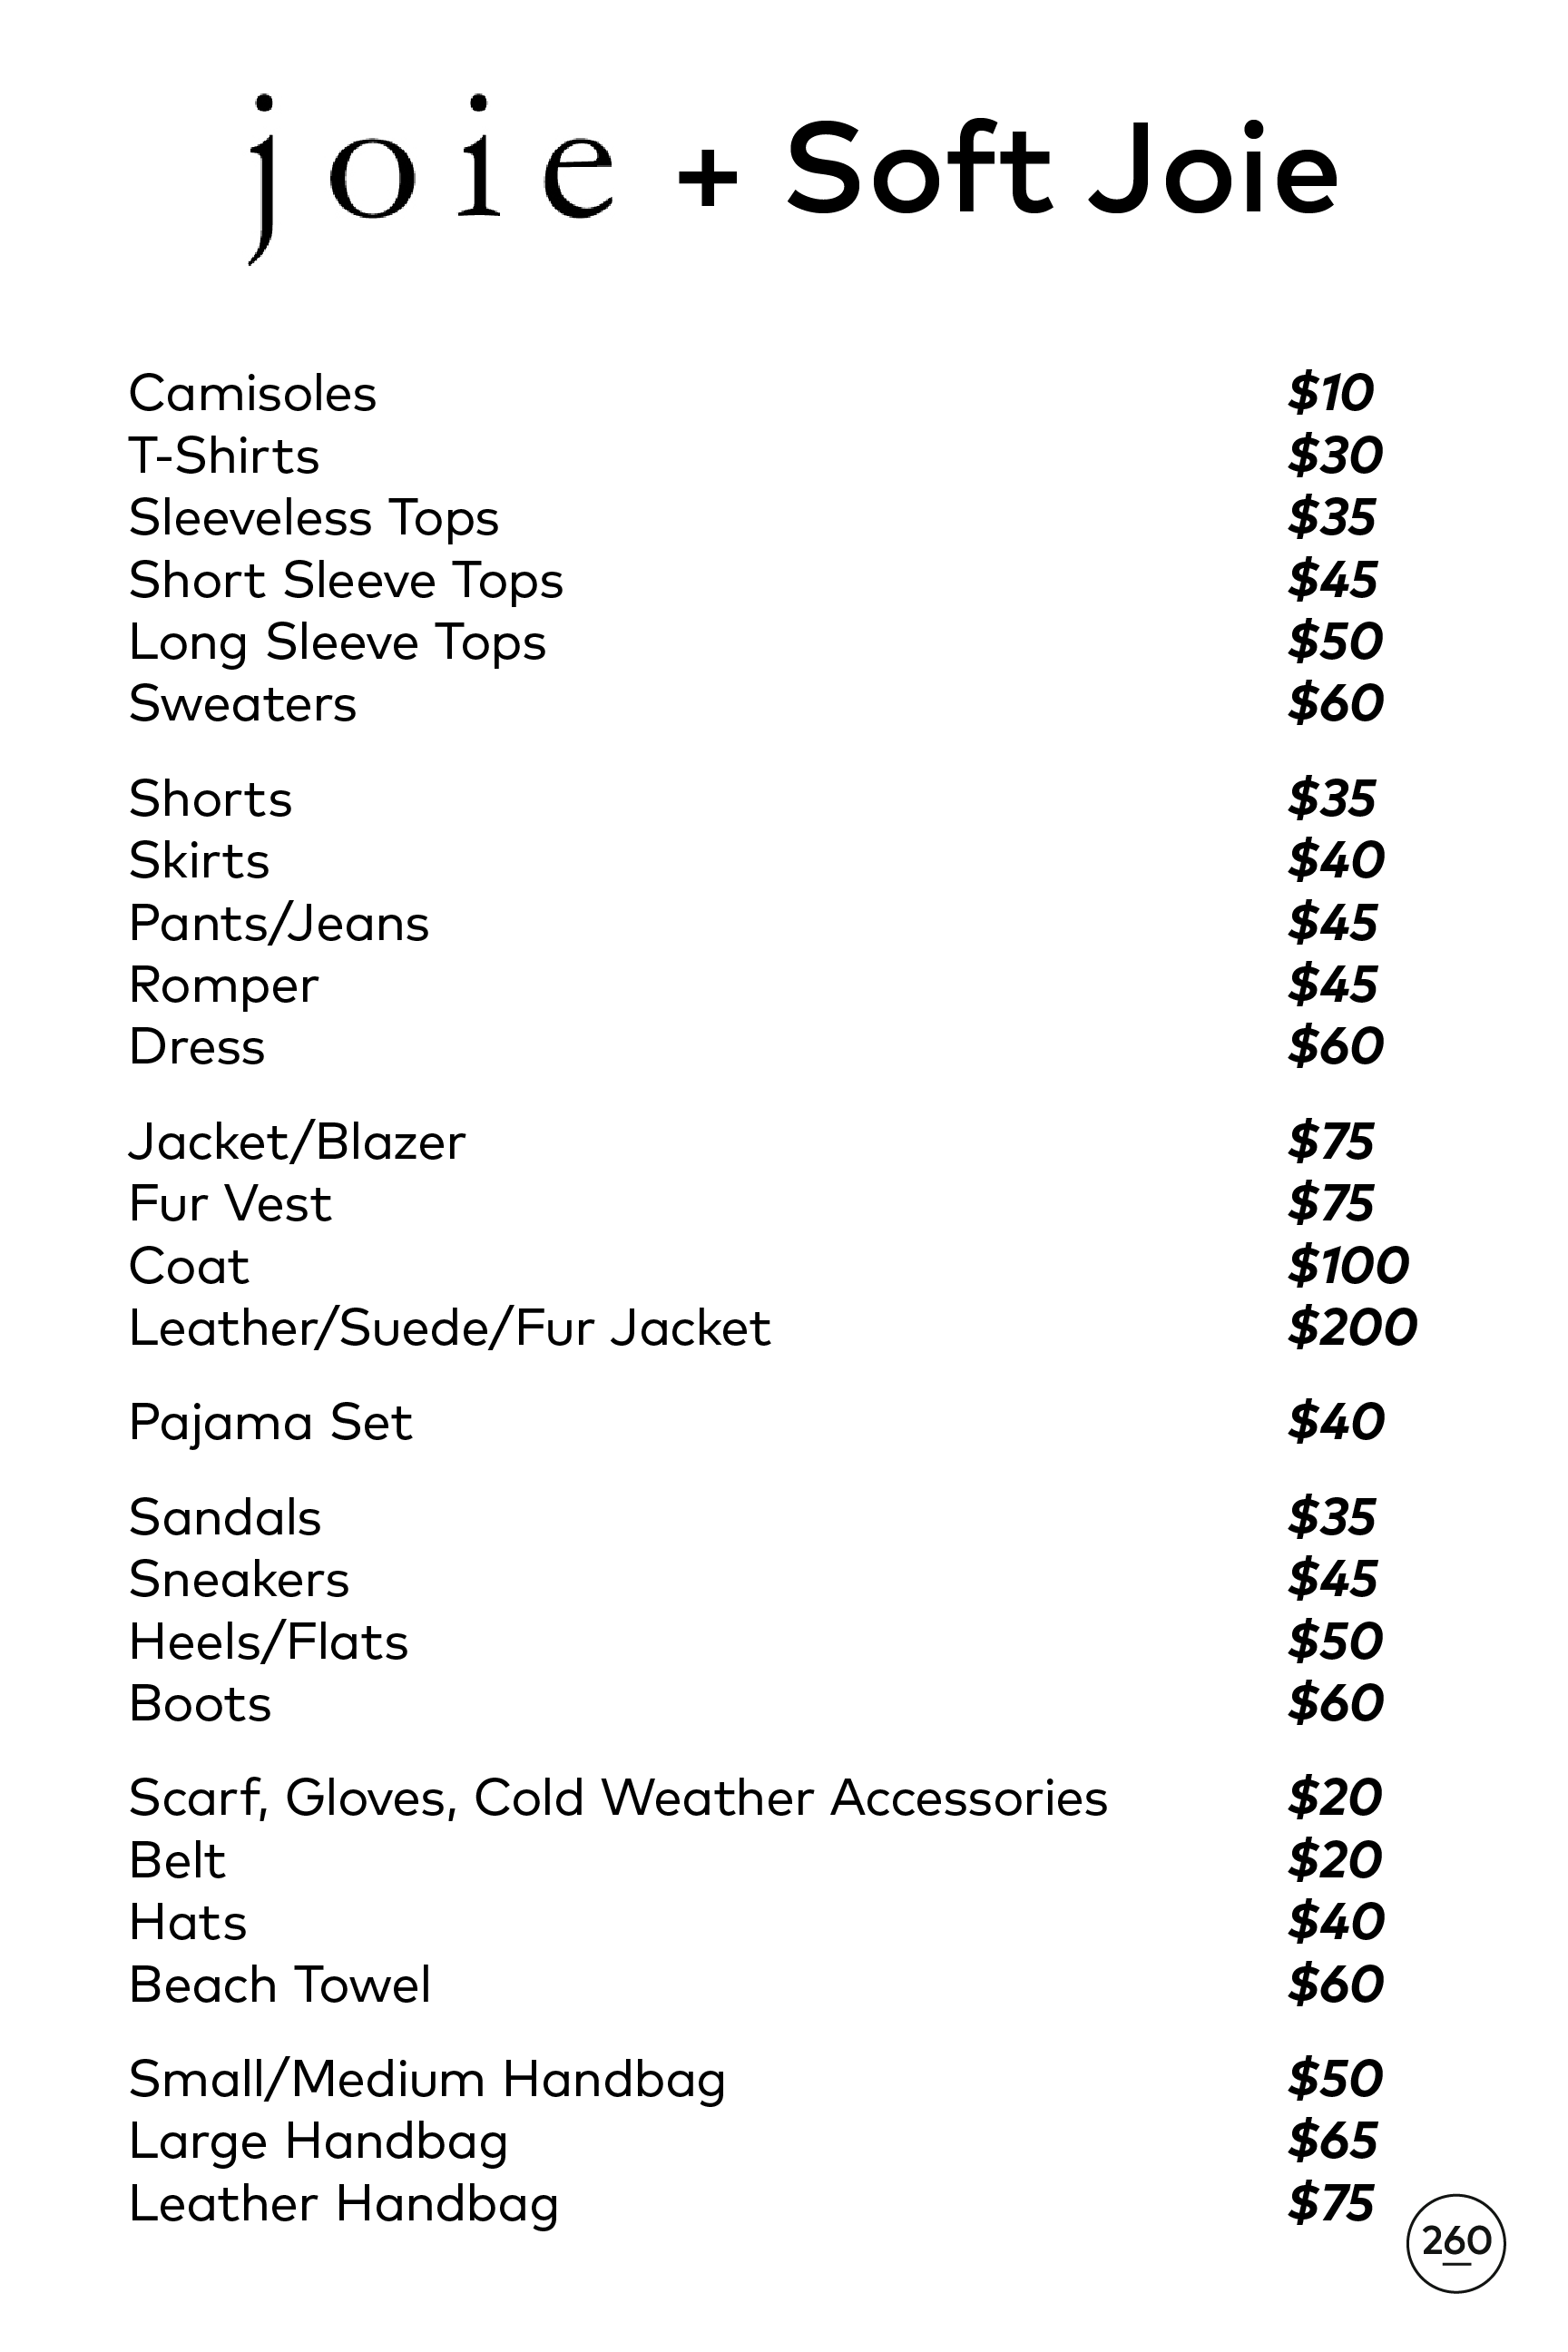 EquipmentJoieCurrentElliot_Pricing-01.png